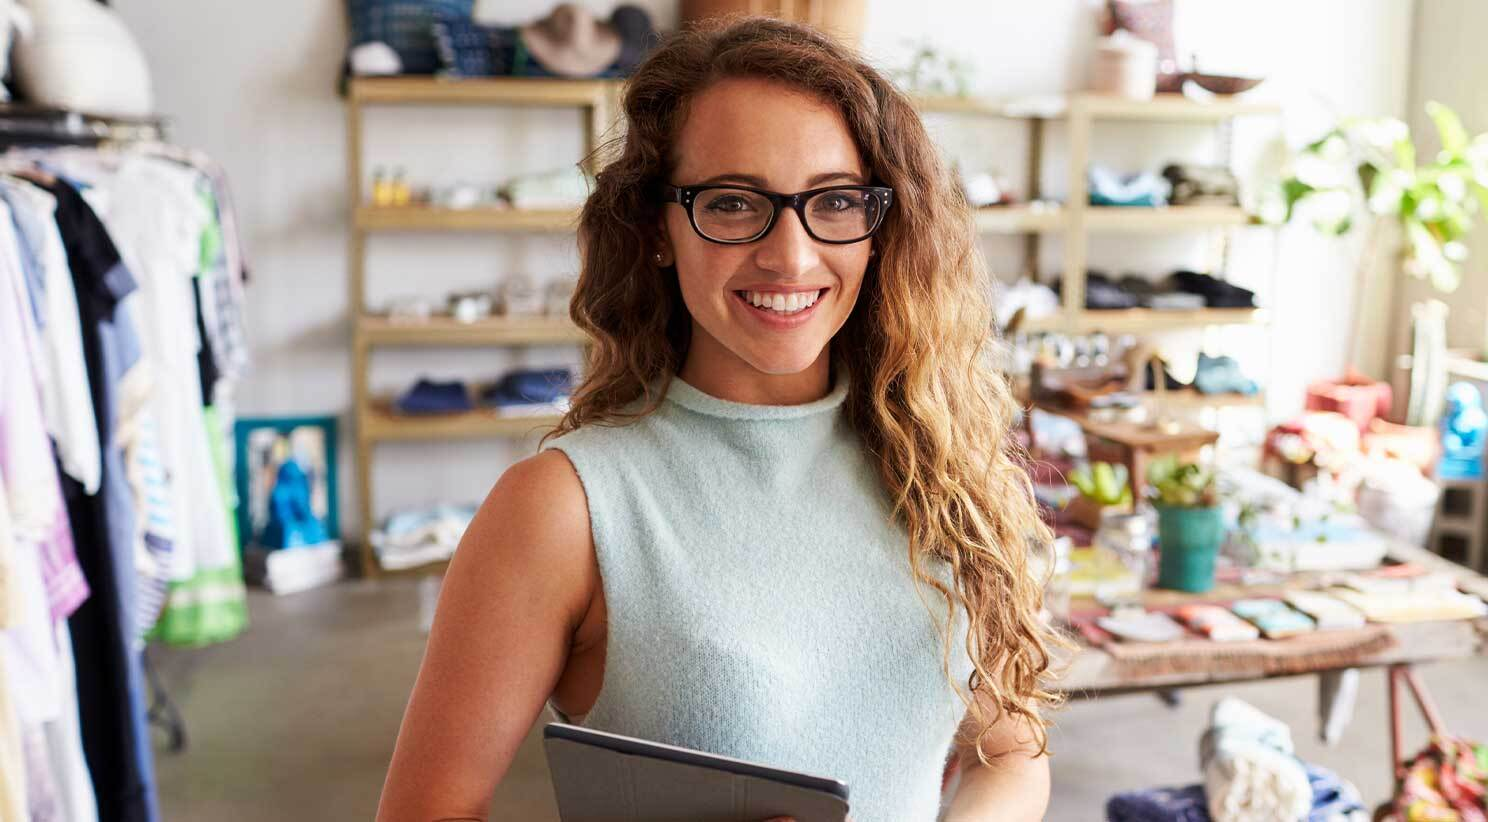 Trustworthy eCommerce Store Manager